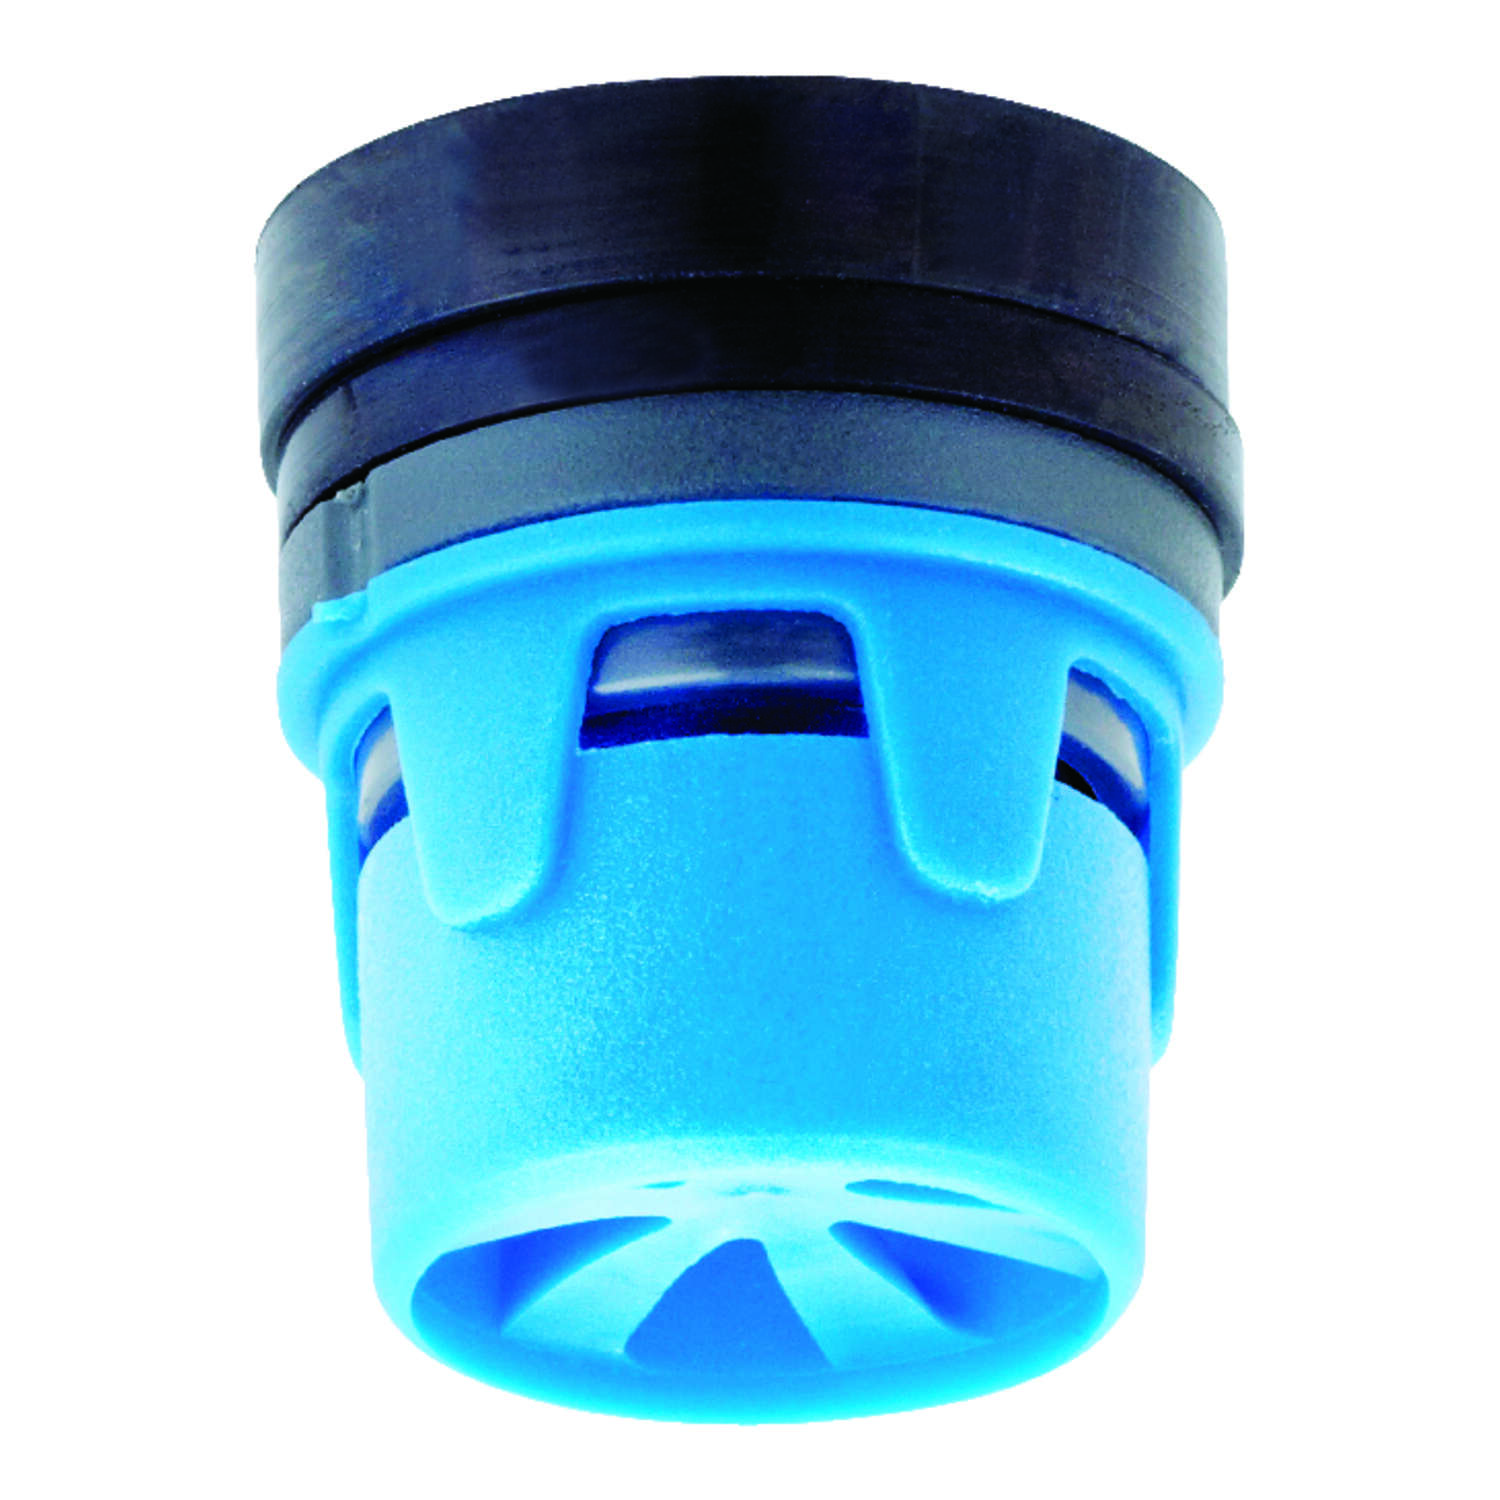 Ace  Aerator Insert  13/16 in.  x 0.00 in.  Blue